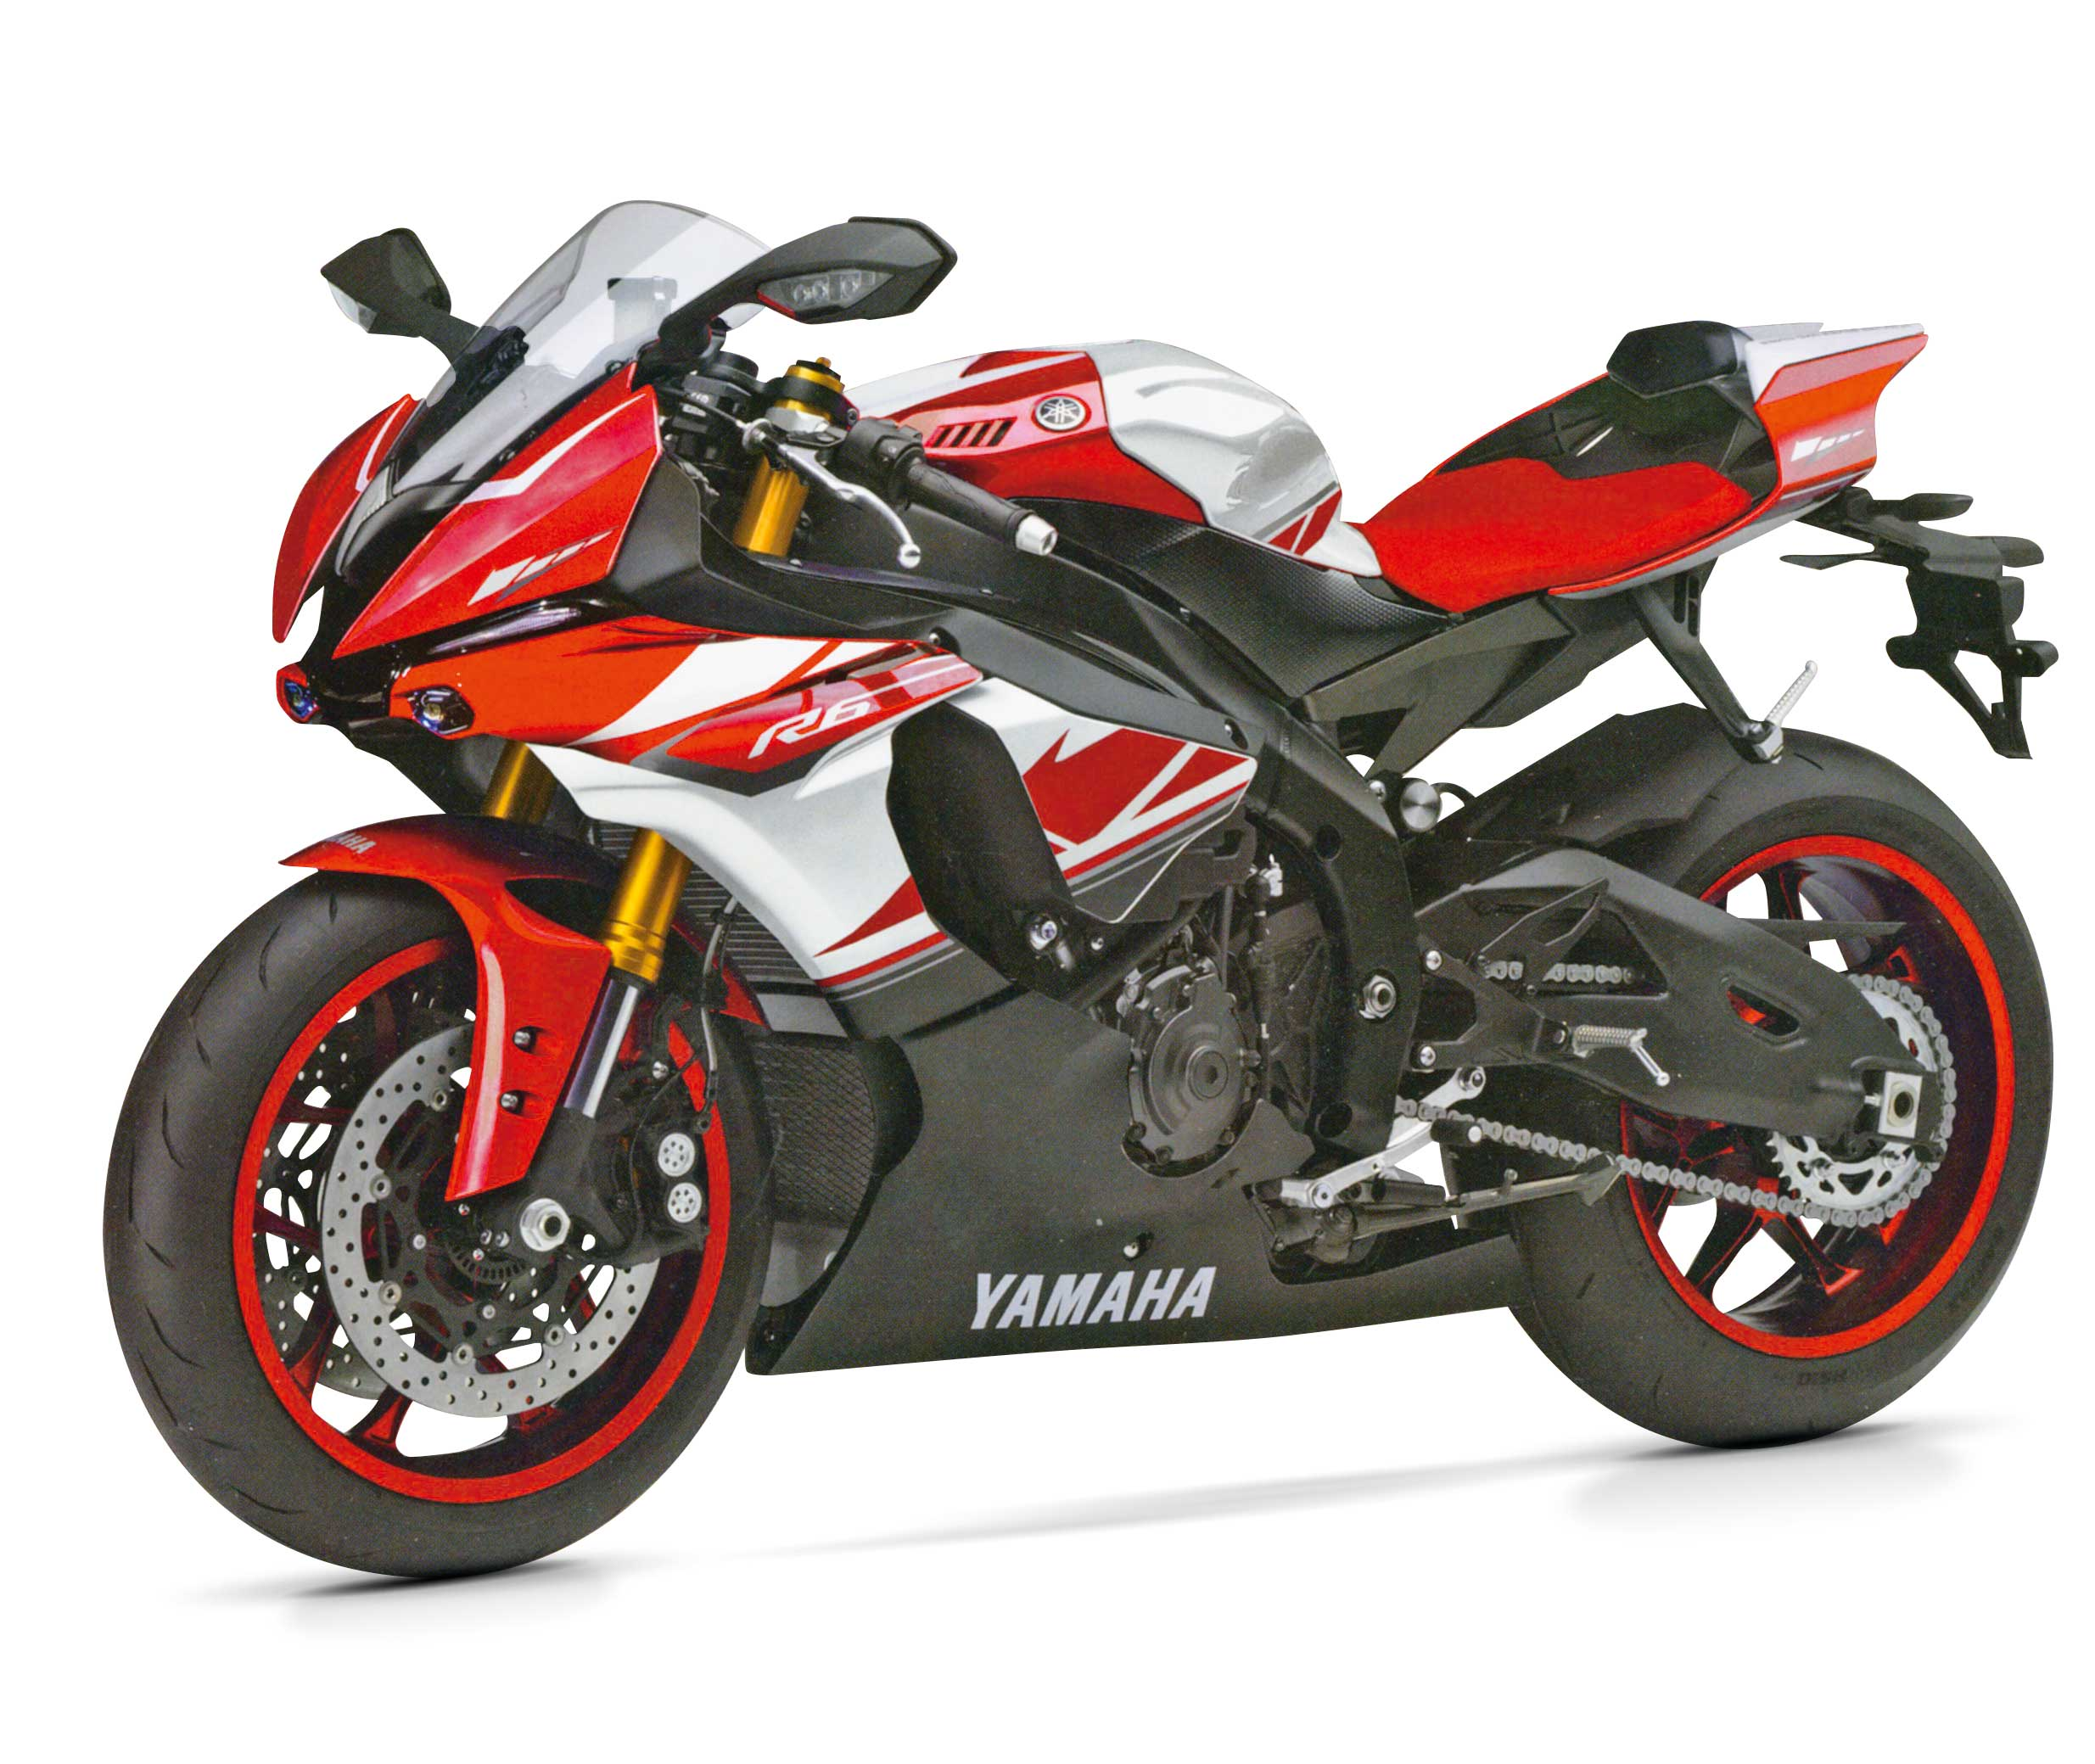 Yamaha r photo - 6